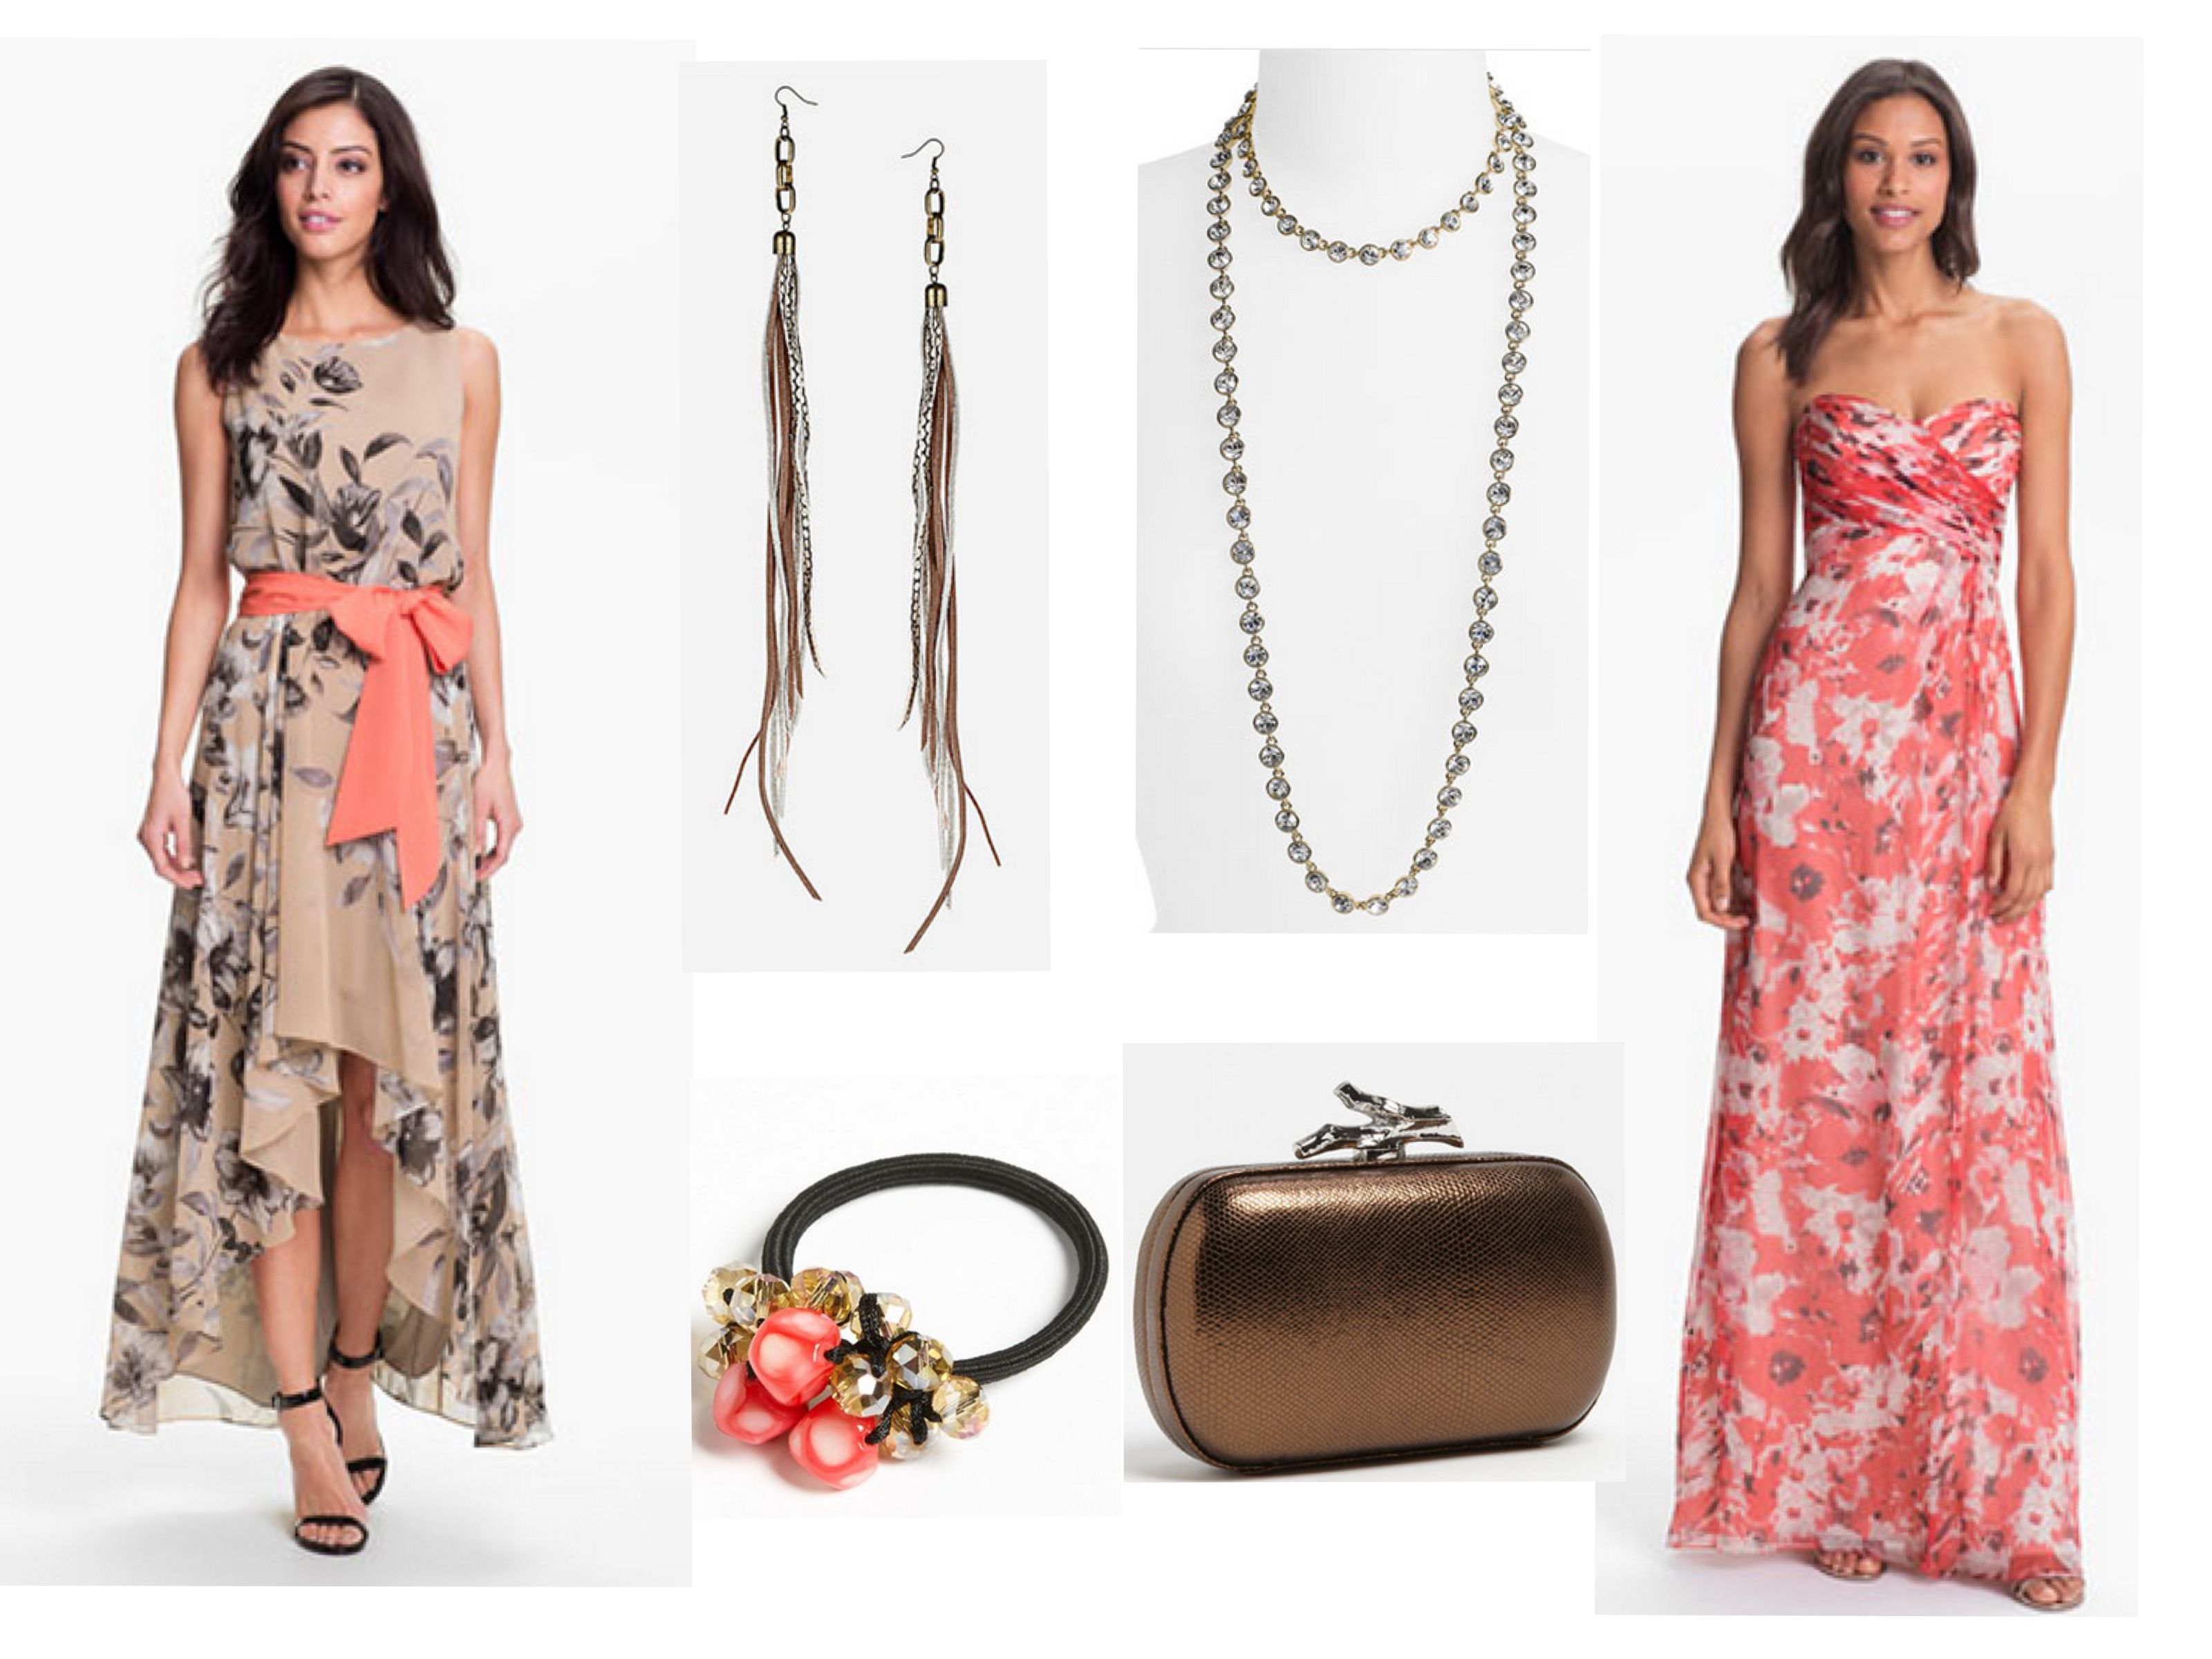 6 Outfits To Wear To A Backyard Style Wedding Wedding Attire